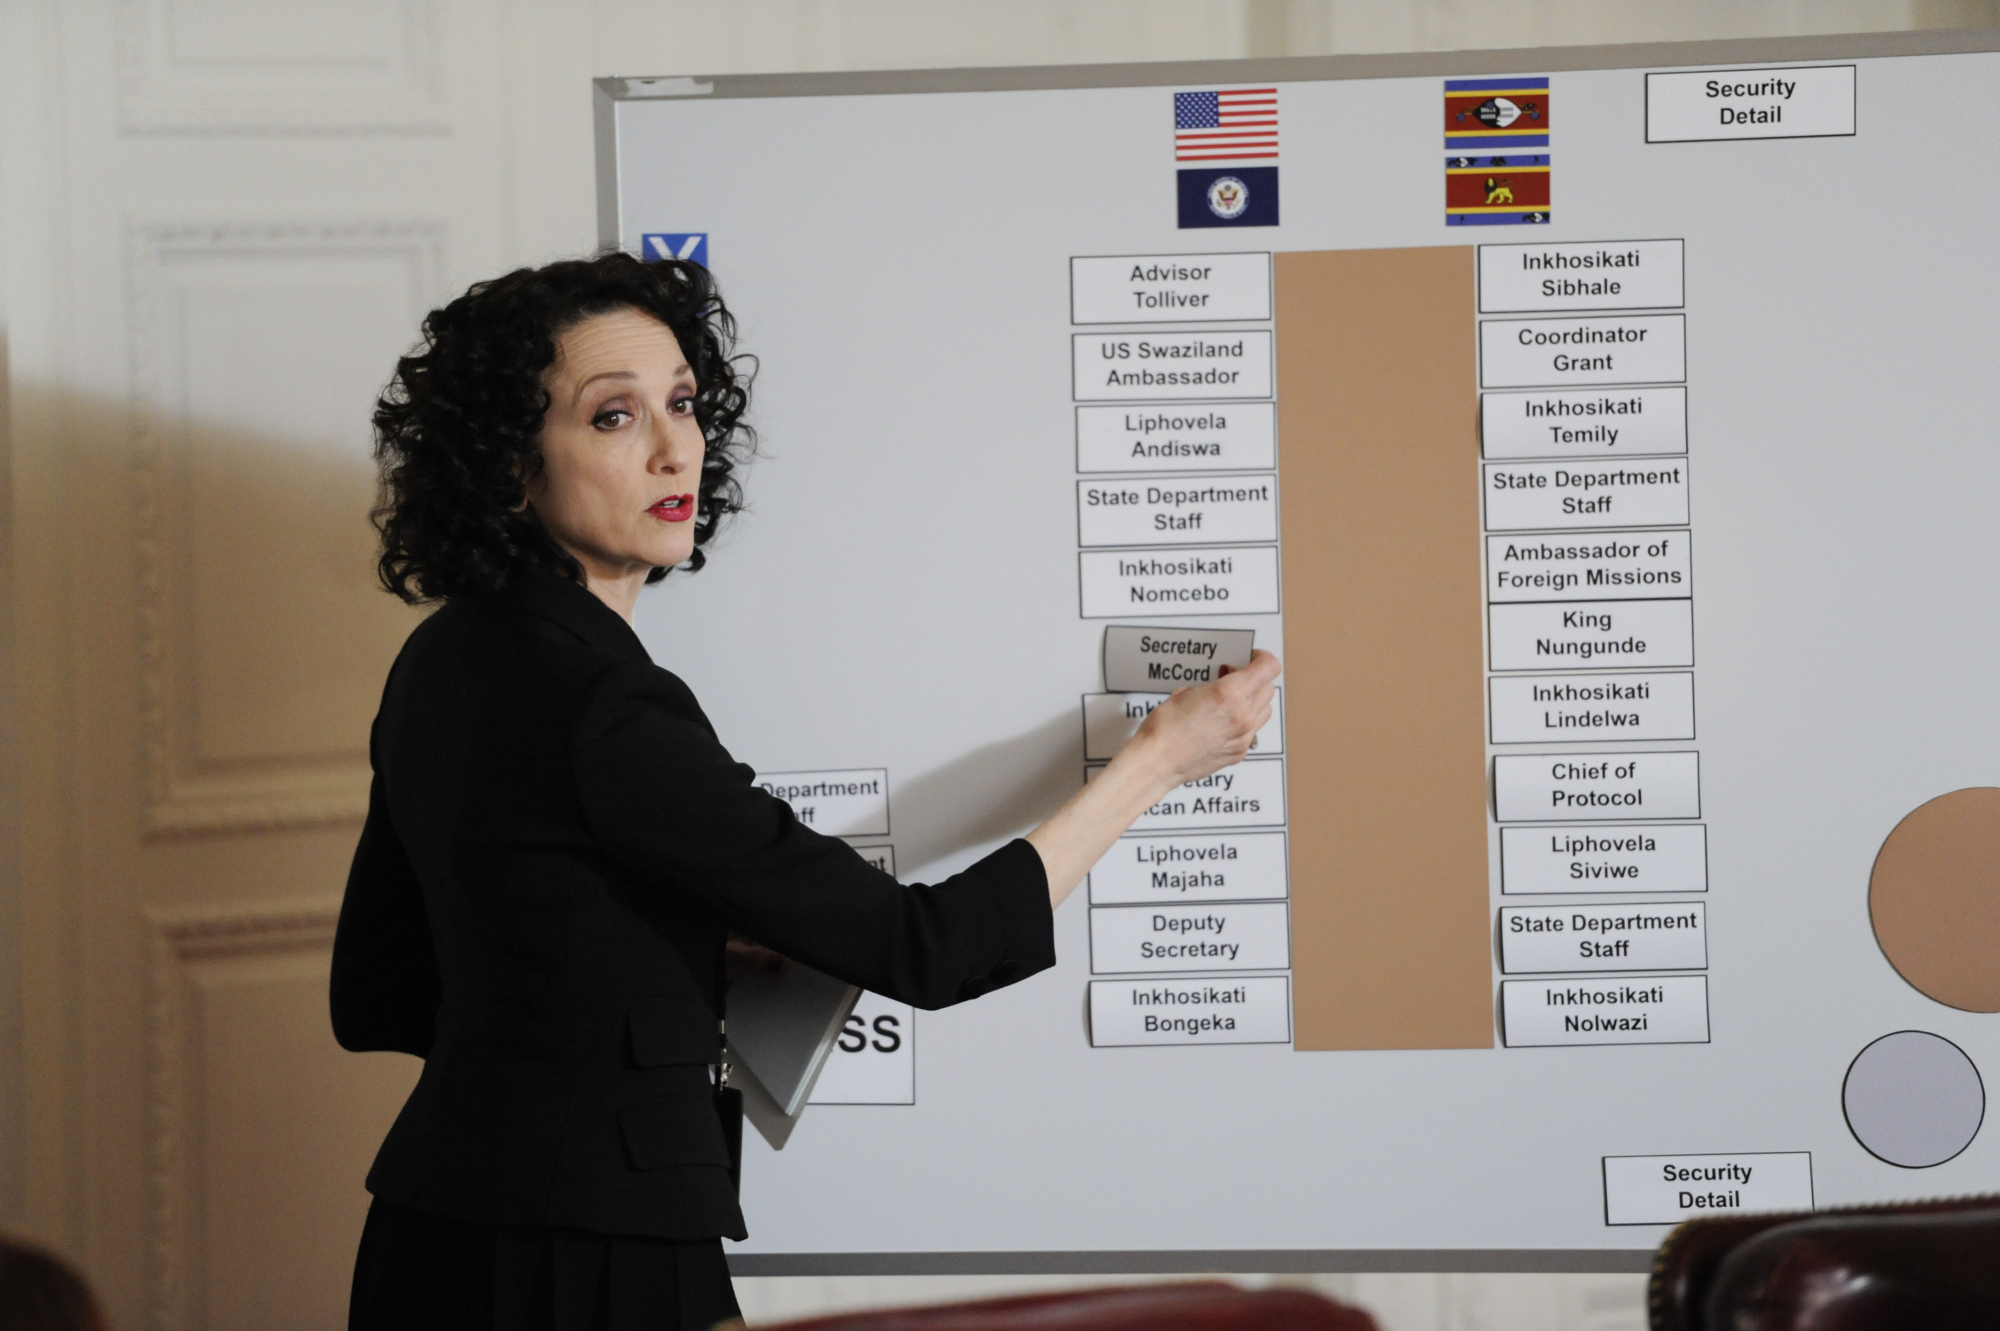 """5. Bebe Neuwirth won two Emmy Awards in 1990 and 1991 for her role as Lilith on """"Cheers,"""" in the category of Outstanding   Supporting Actress in a Comedy Series."""